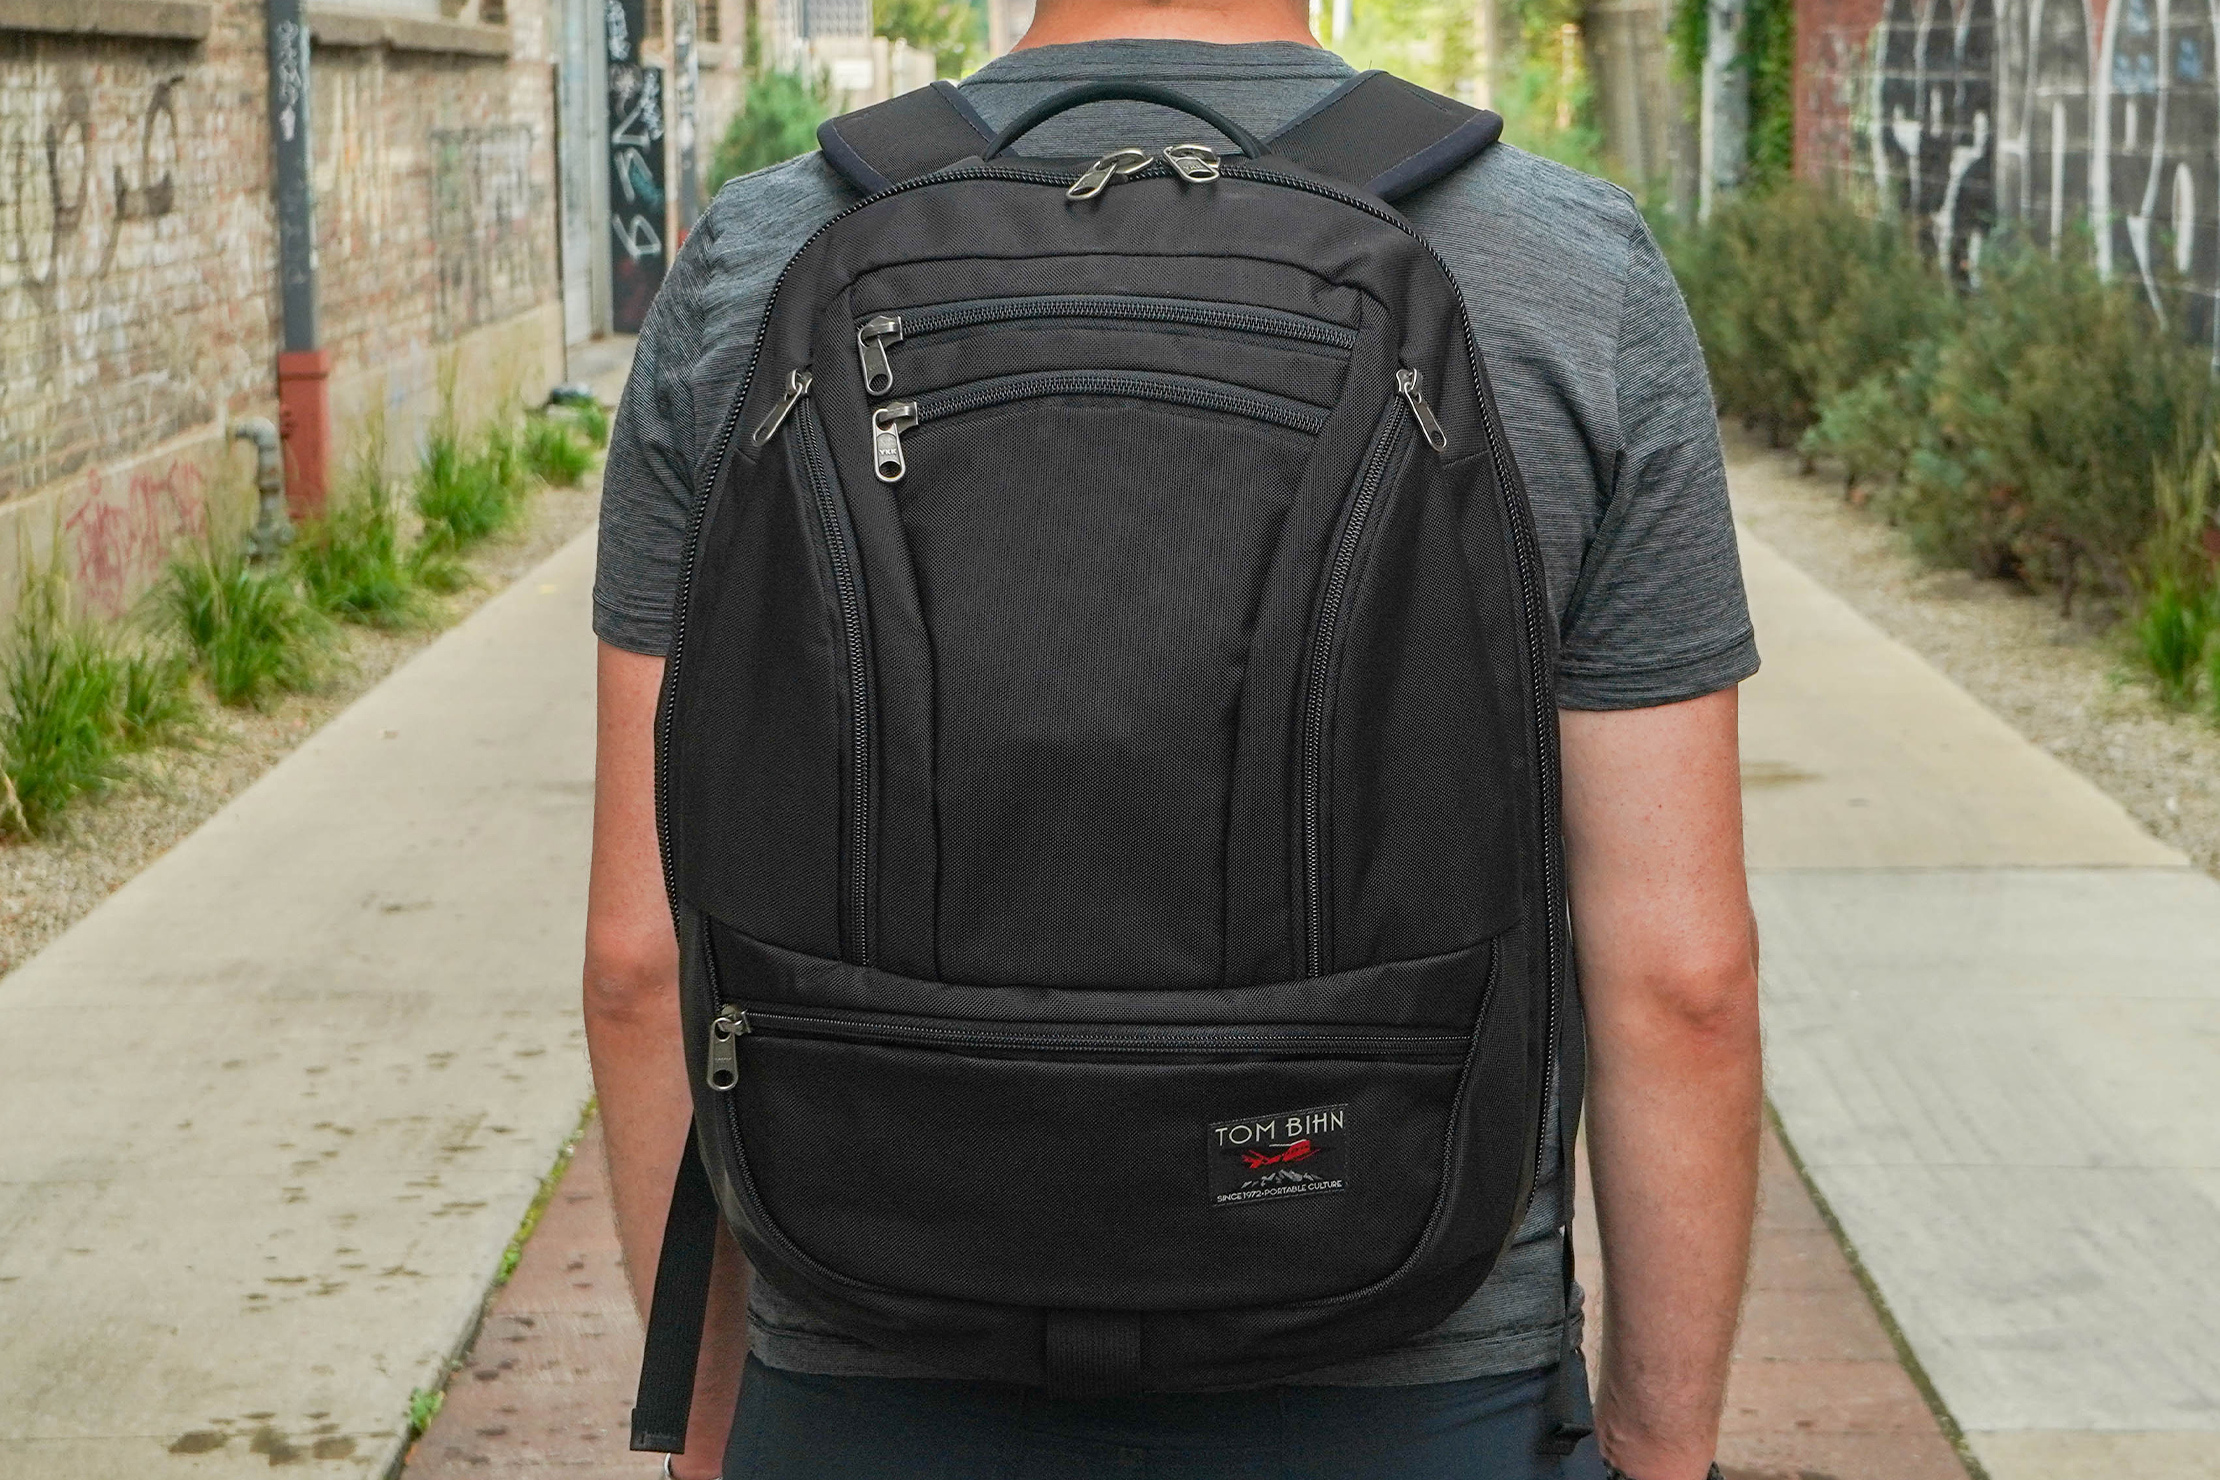 Tom Bihn Synik 30 in Detroit